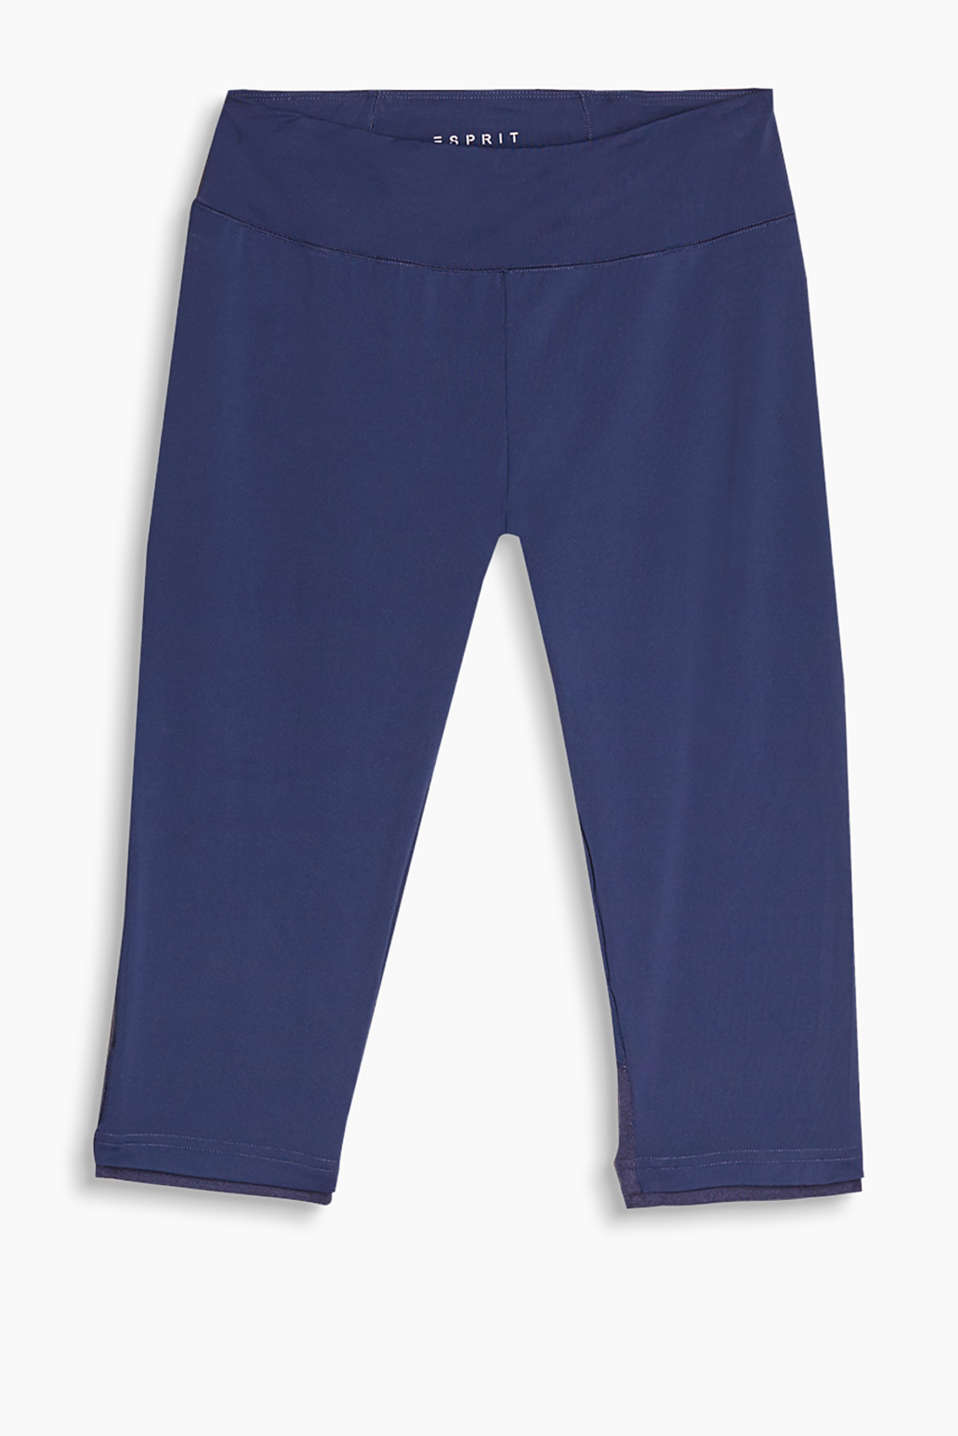 Training capris with a small zip compartment at the waistband and sporty decorative stitching